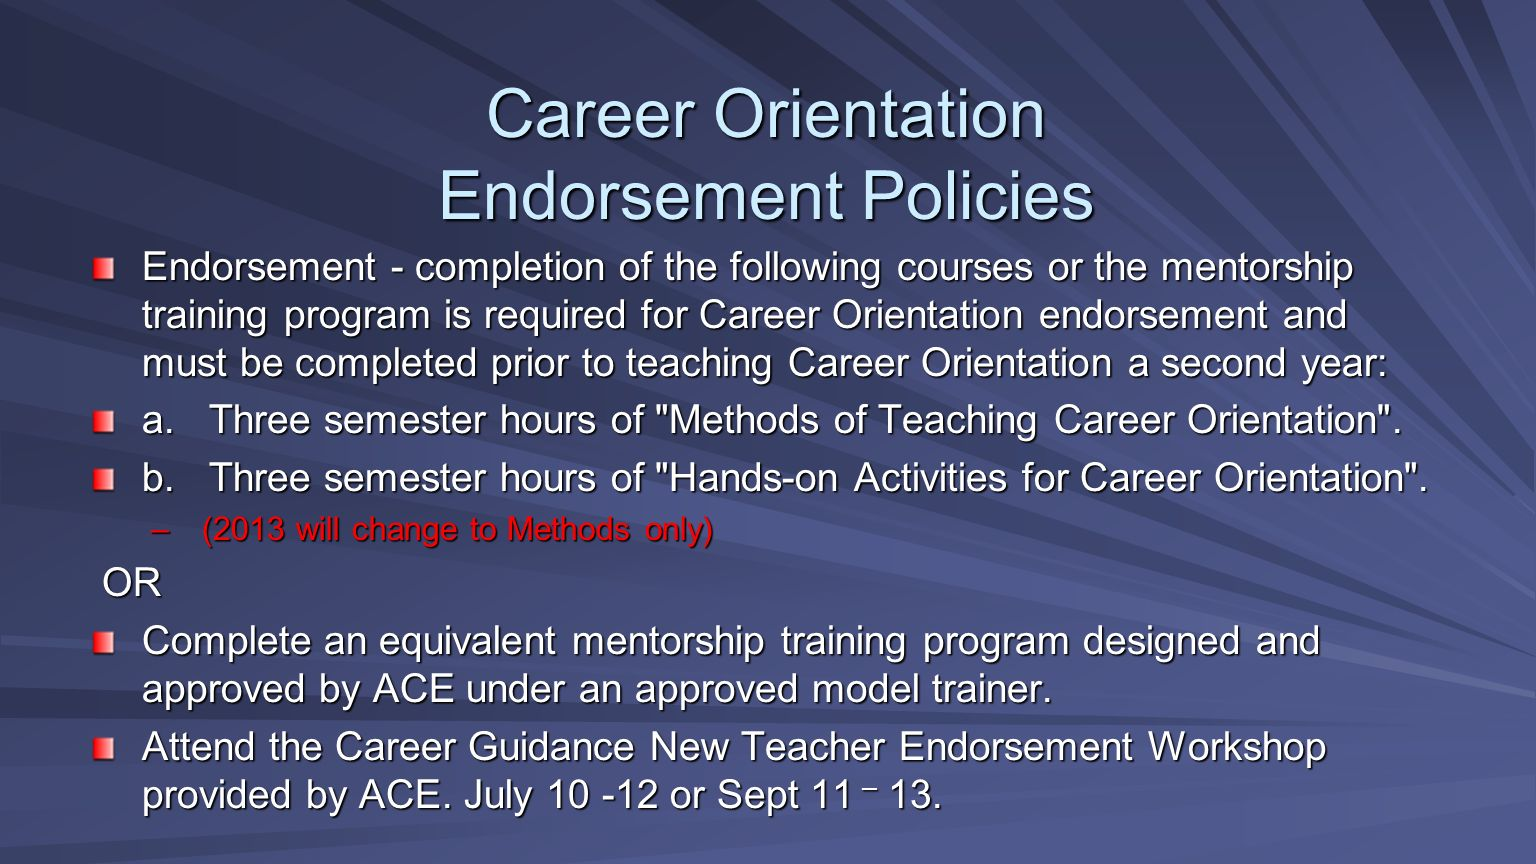 Endorsement - completion of the following courses or the mentorship training program is required for Career Orientation endorsement and must be comple